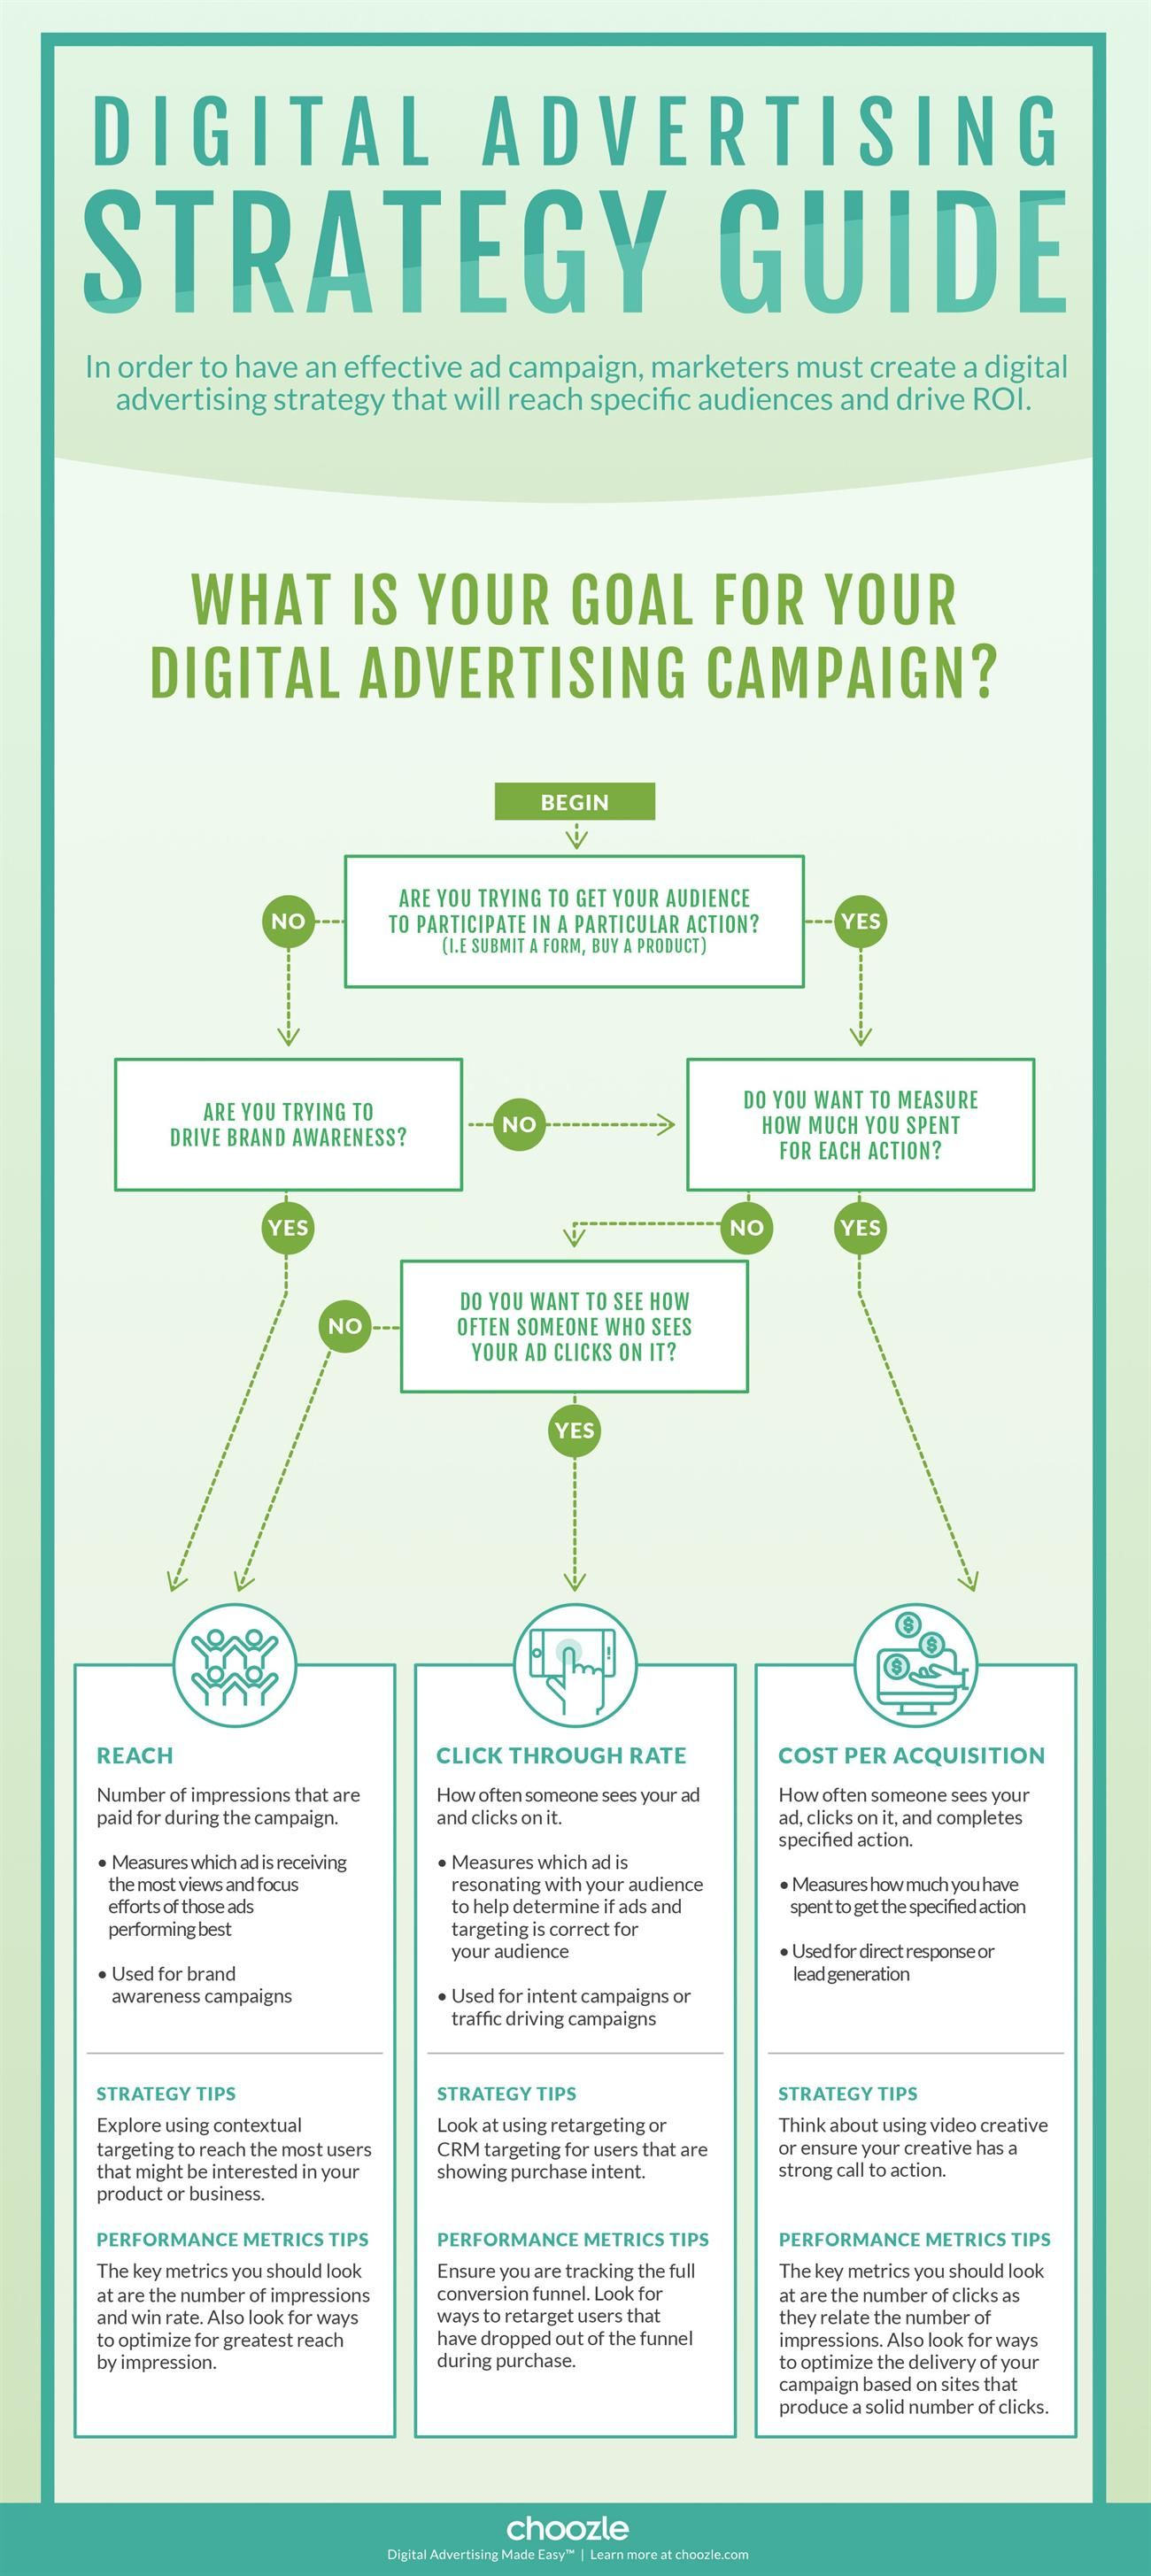 Creating a b2b digital marketing plan for 2017 infographic smart - Digital Marketing Campaigns Come Down To Selecting The Right Strategy And Using The Right Tactics And